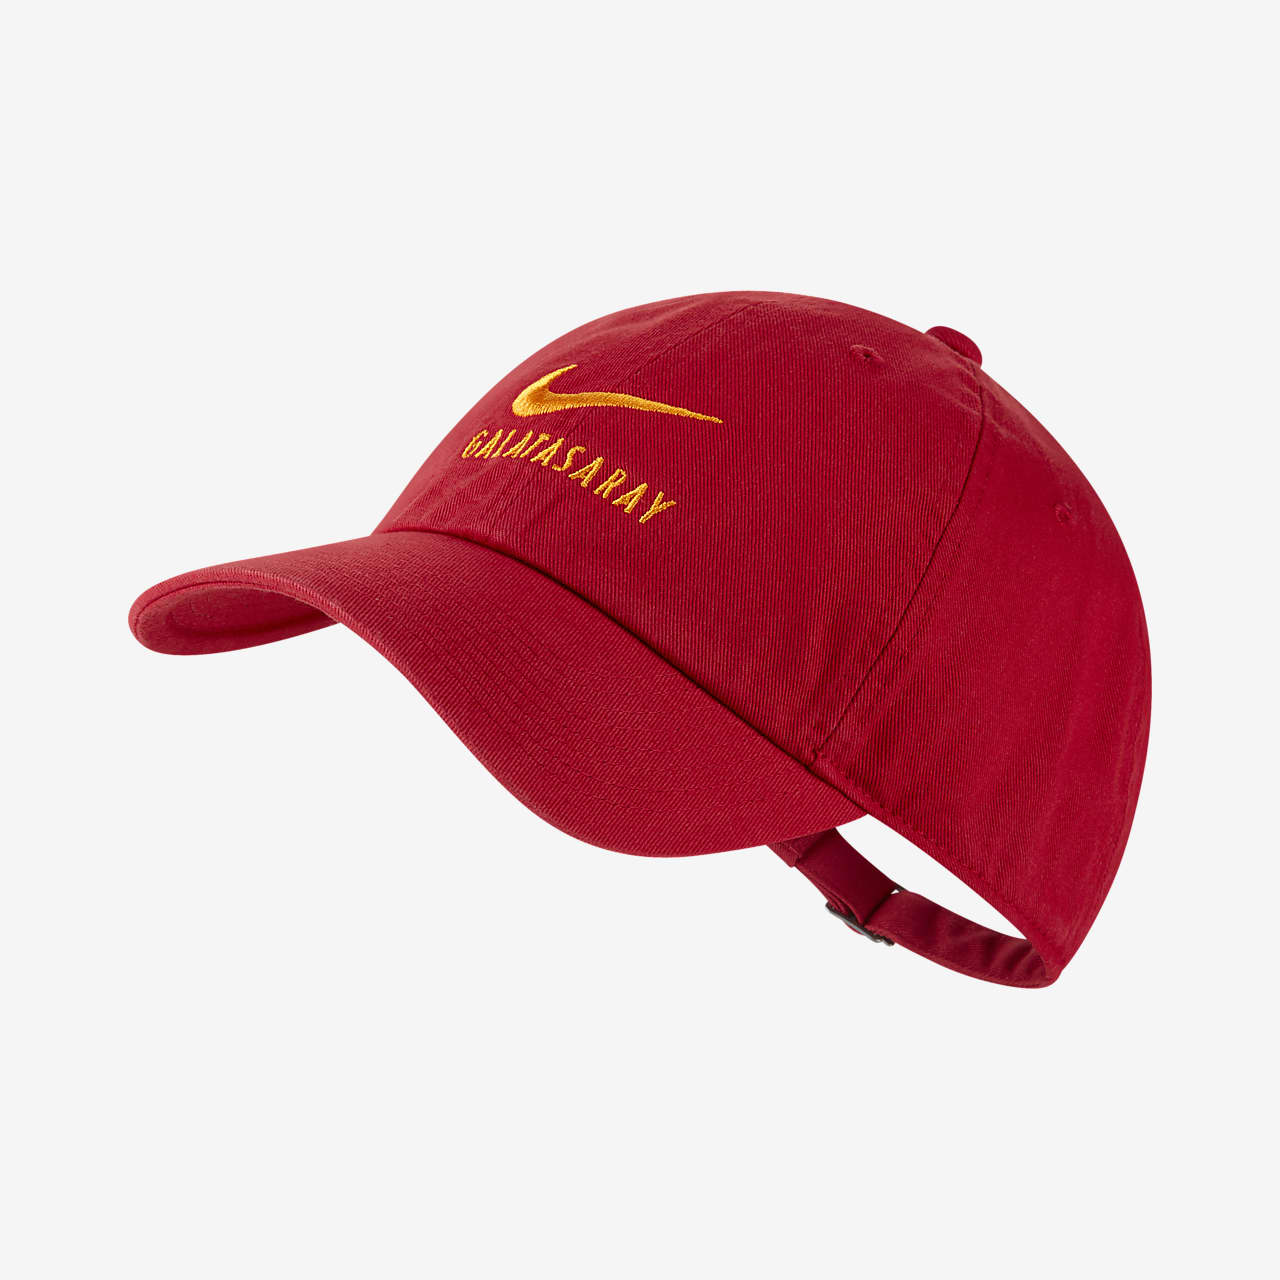 Casquette Galatasaray Heritage86